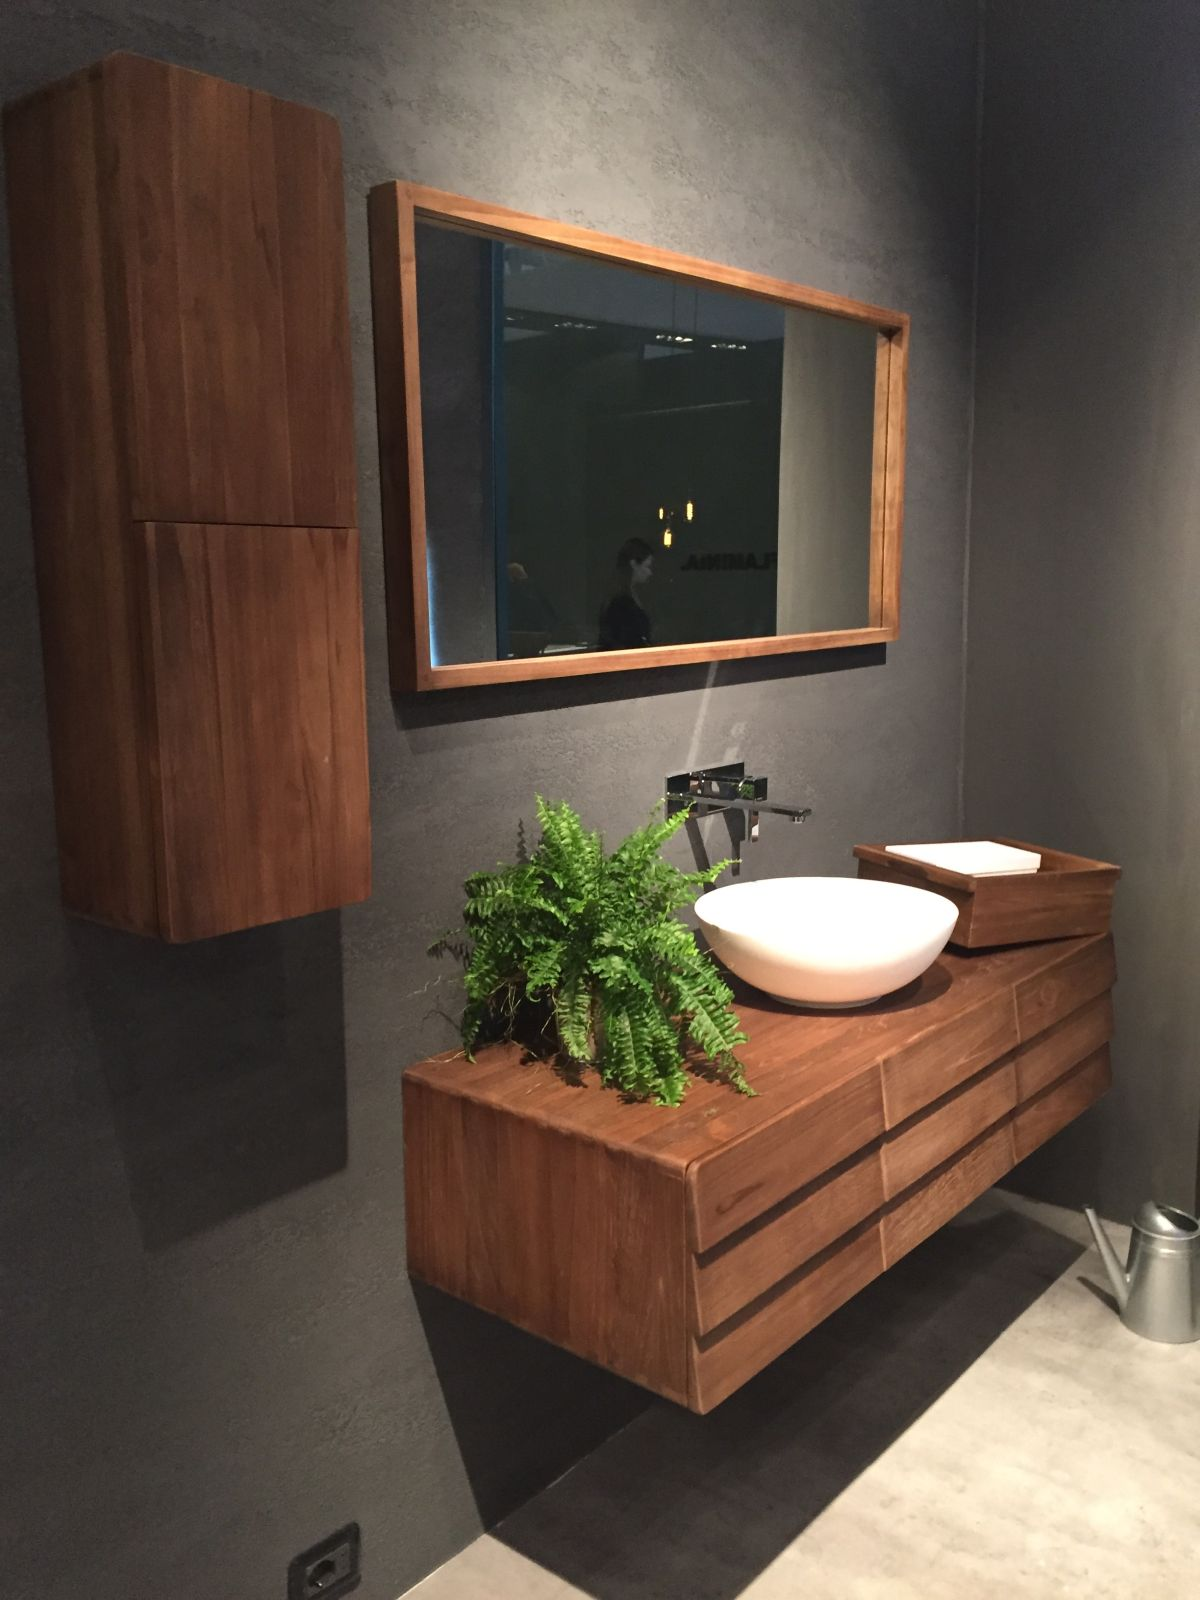 wooden bathroom sink cabinets.  Stylish Ways To Decorate With Modern Bathroom Vanities